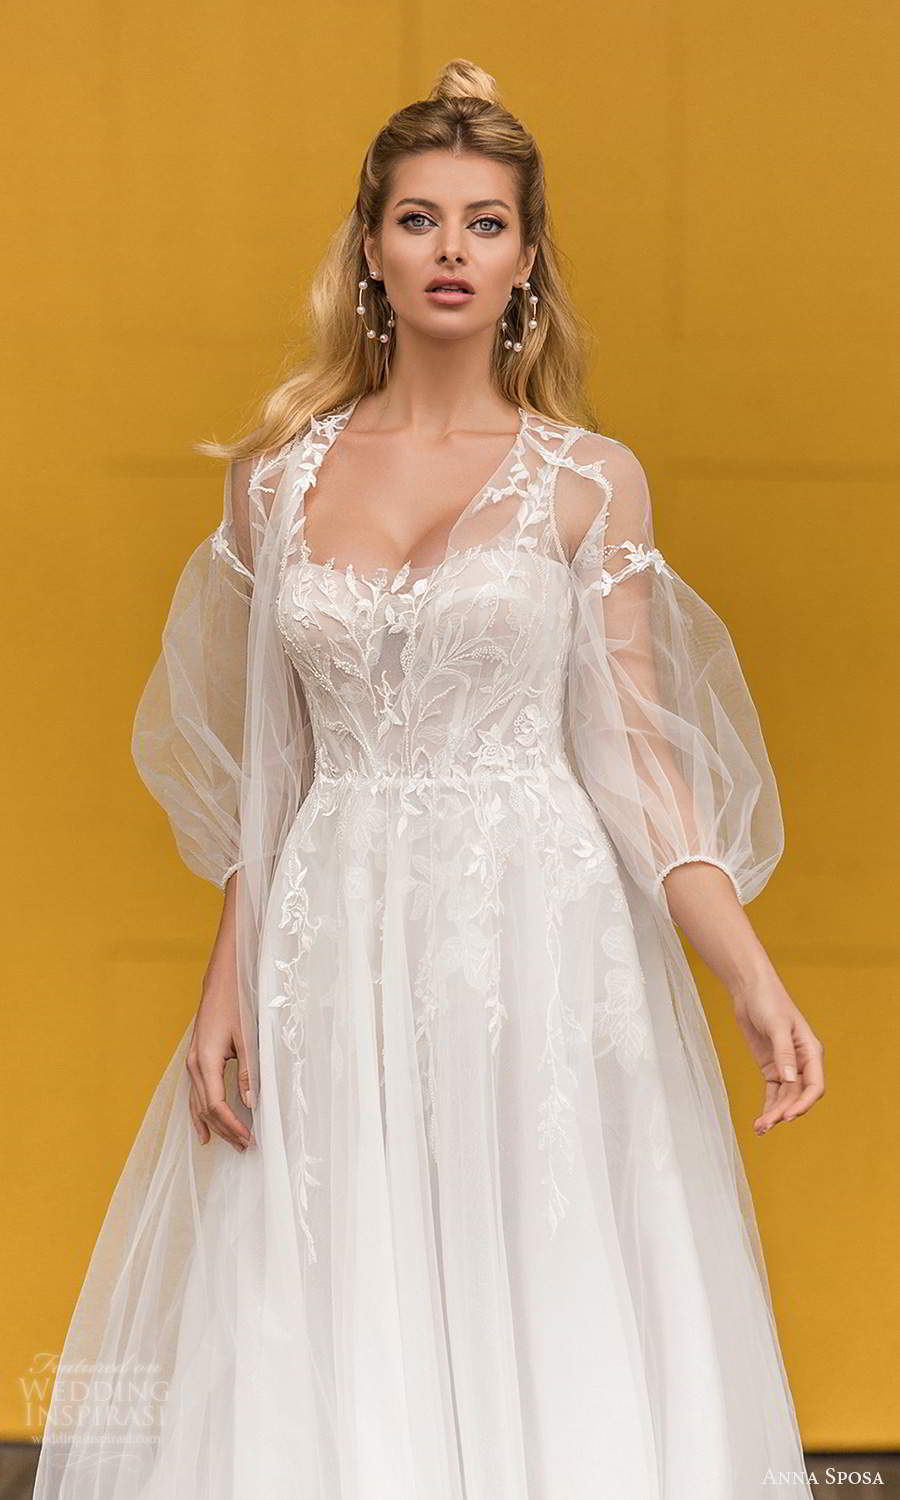 anna sposa 2021 bridal sleeveless straps semi sweetheart neckline embellished a line ball gown wedding dress chapel train sheer bishop sleeve jacket (21) mv